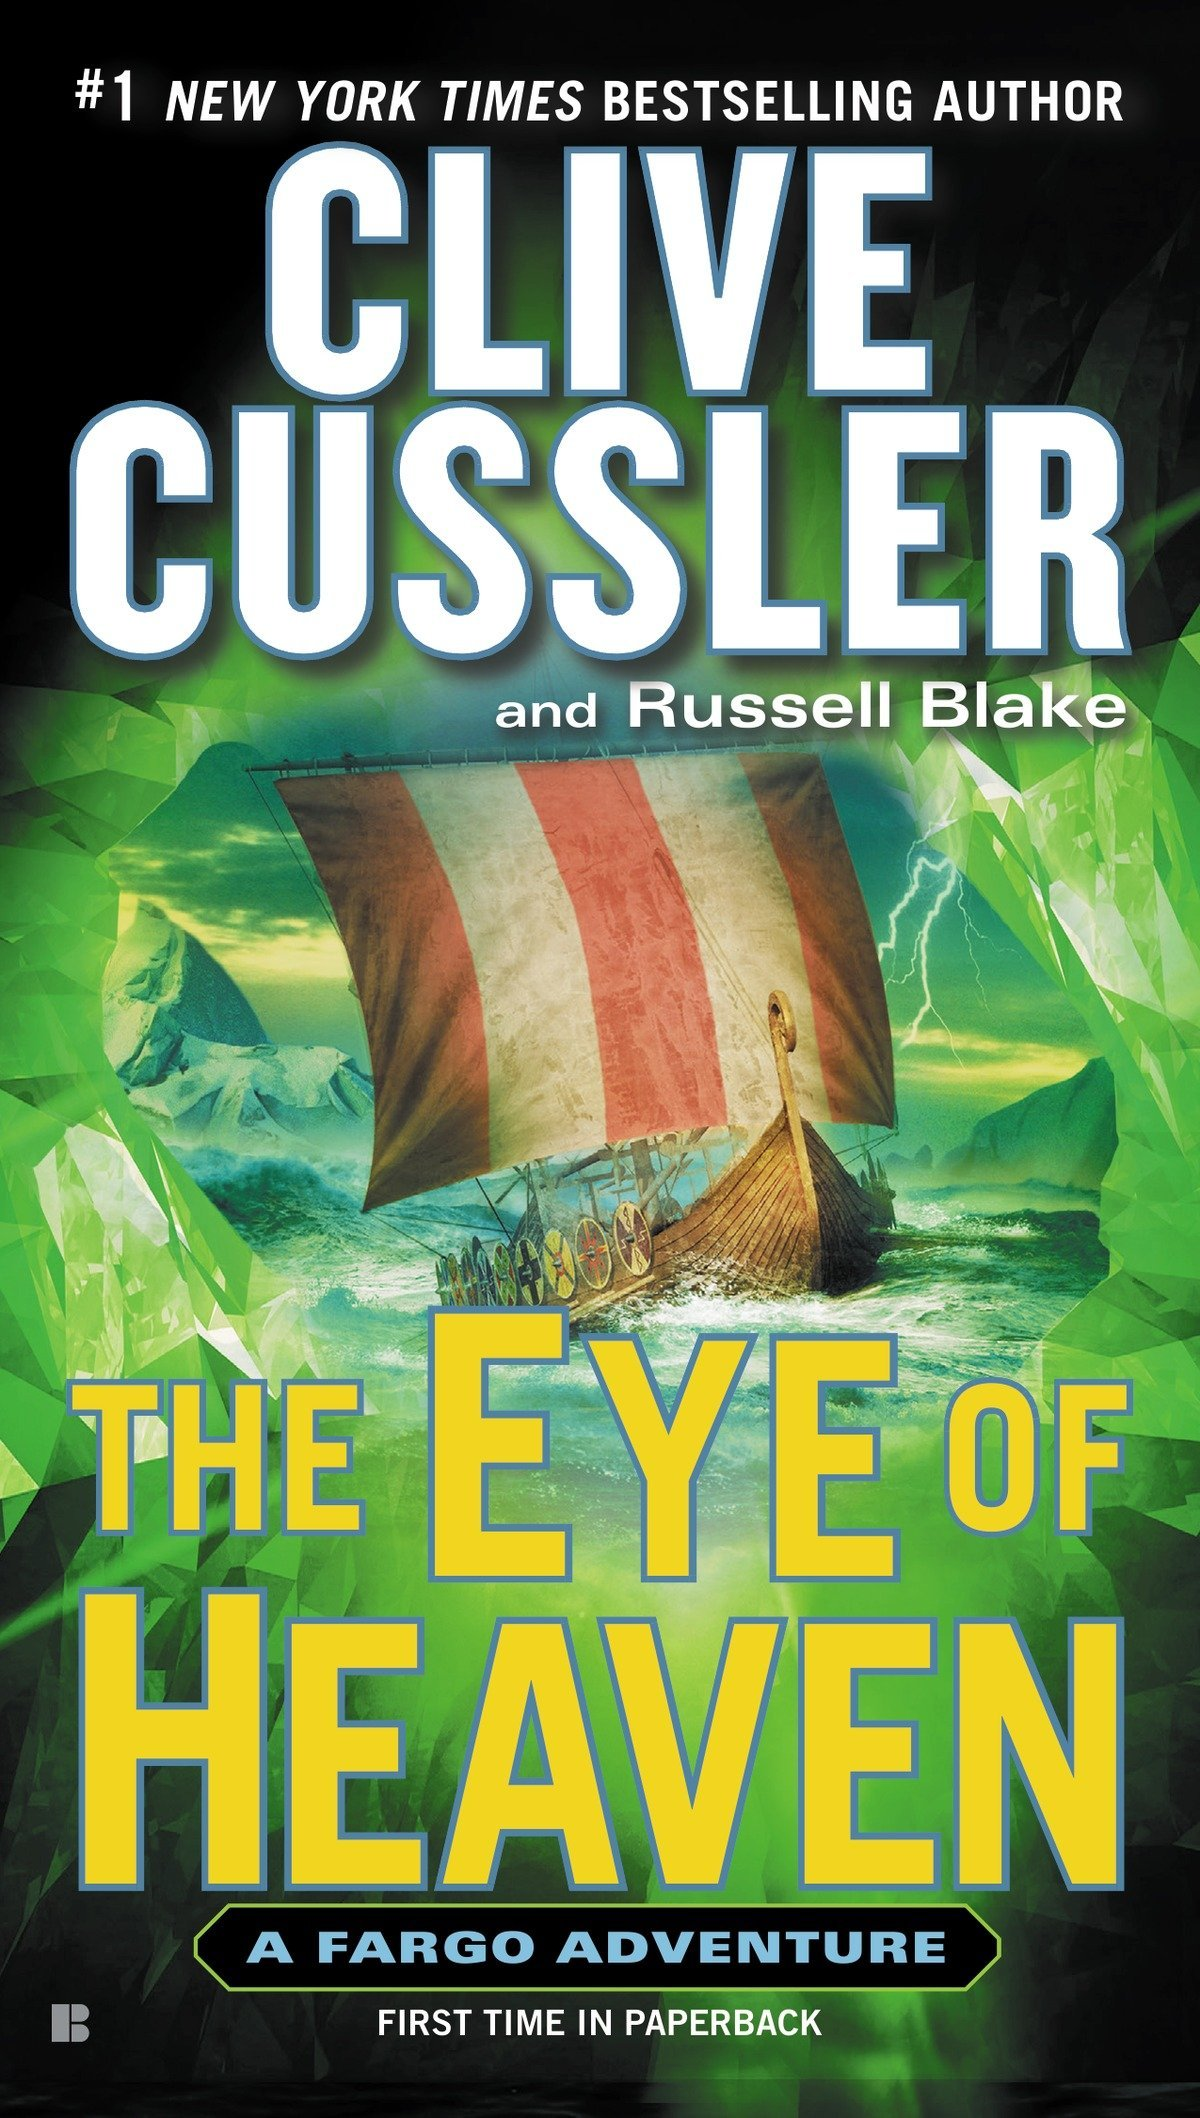 Amazon.com: The Eye of Heaven (A Sam and Remi Fargo Adventure)  (9780425275177): Clive Cussler, Russell Blake: Books